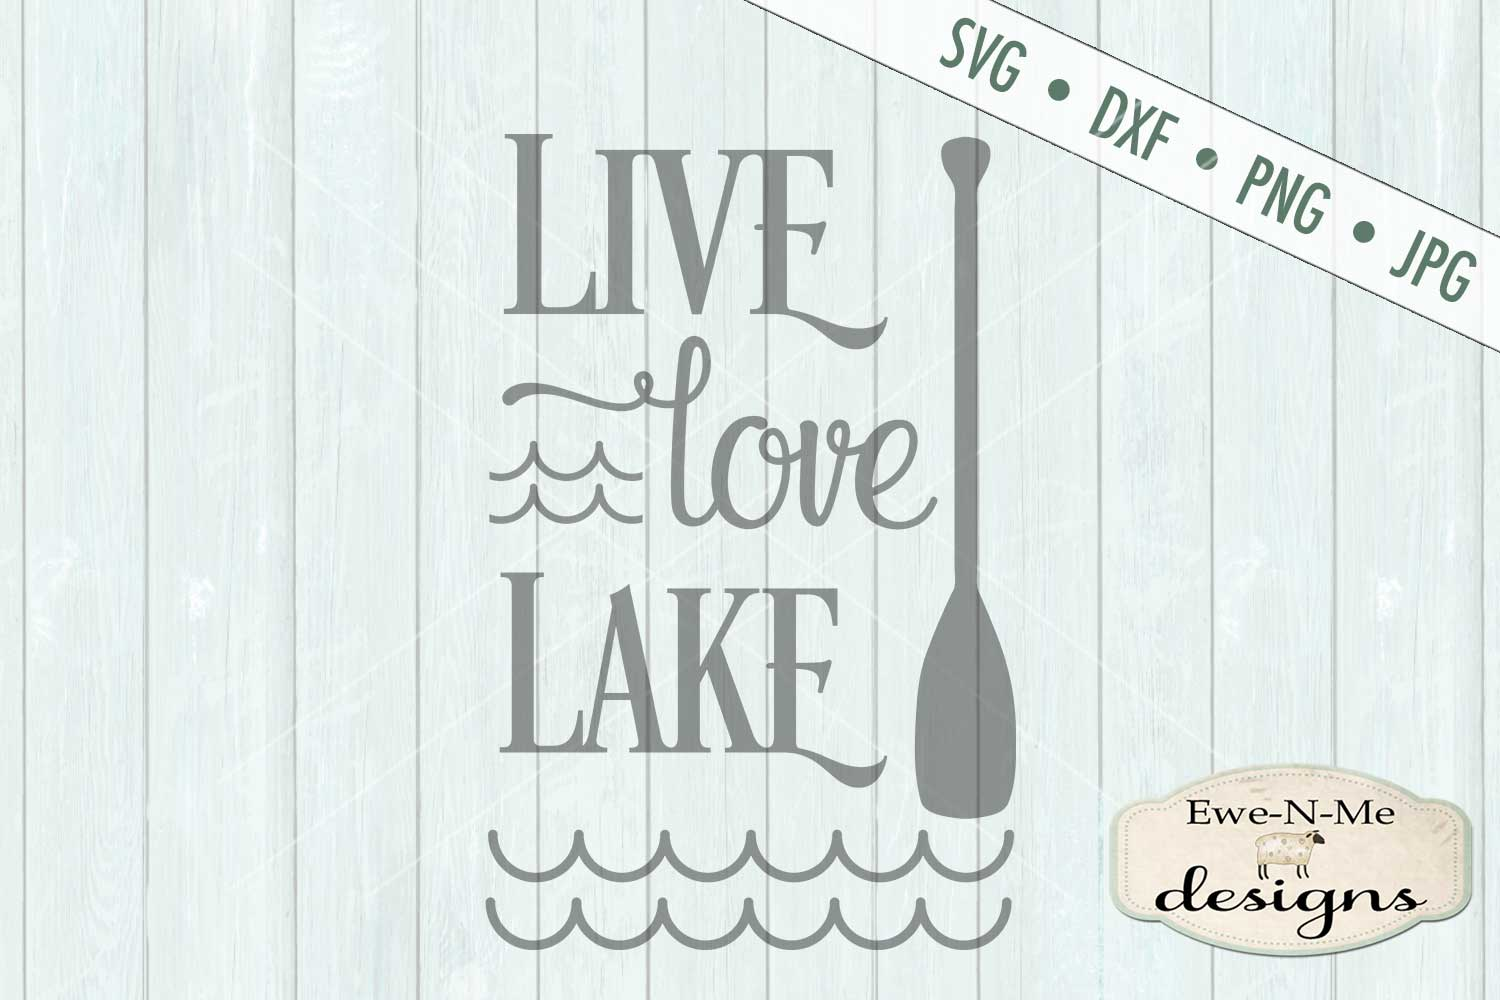 Live Love Lake - Summer - SVG DXF Files example image 2